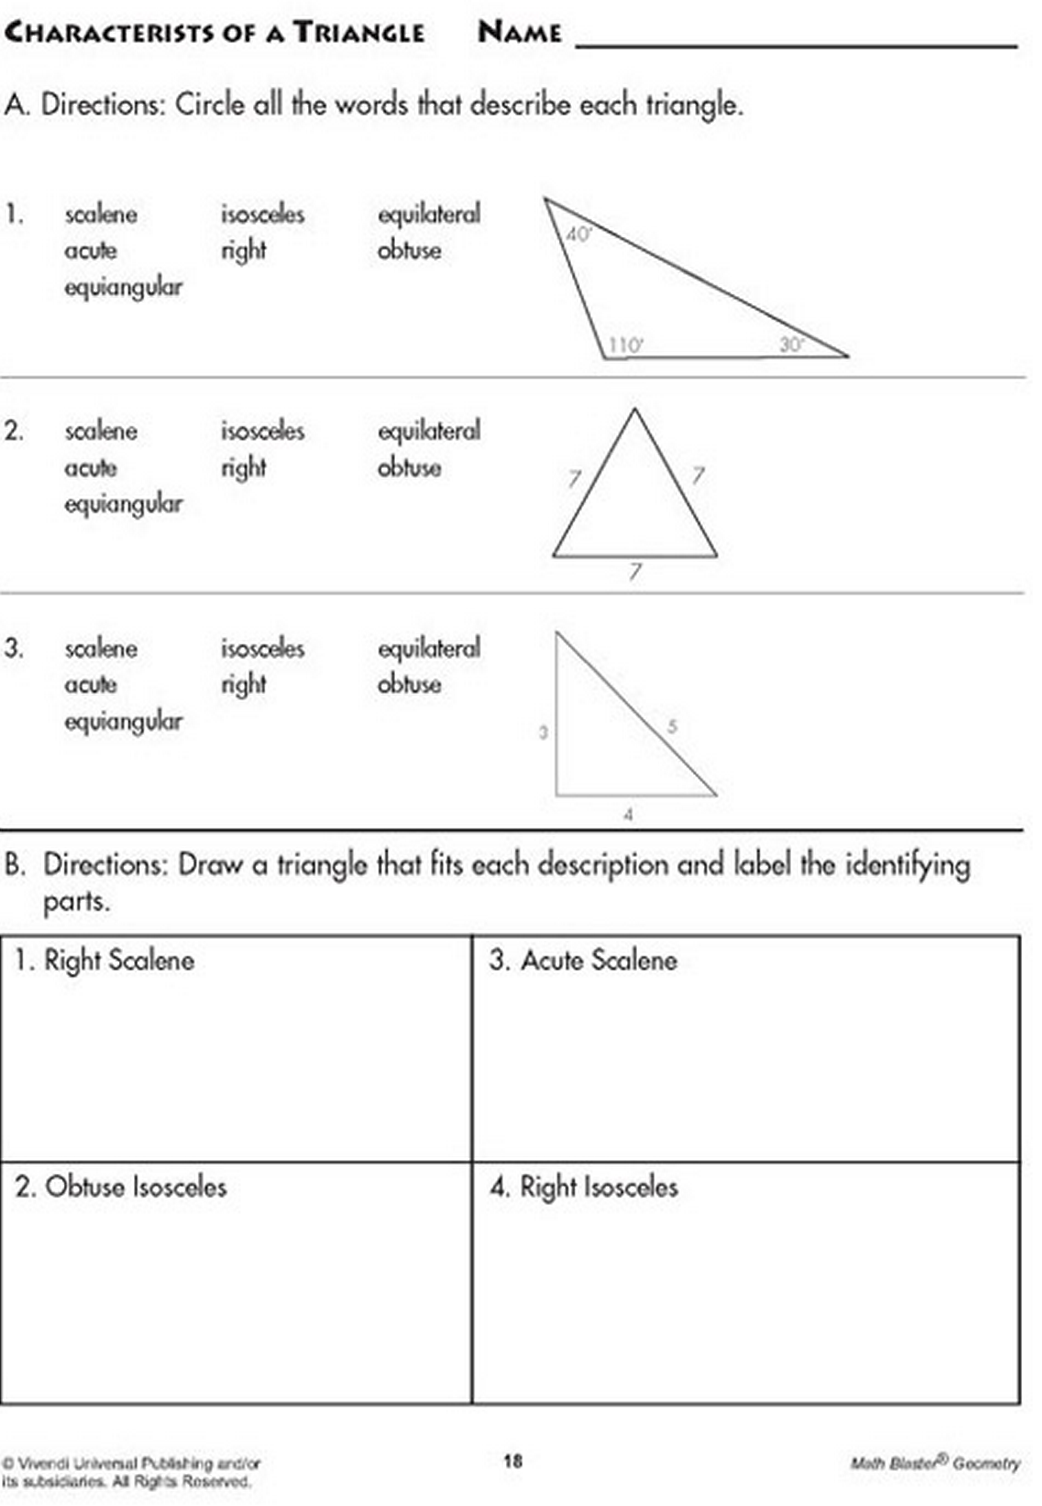 Discover The Characteristics Of A Triangle In Words And In